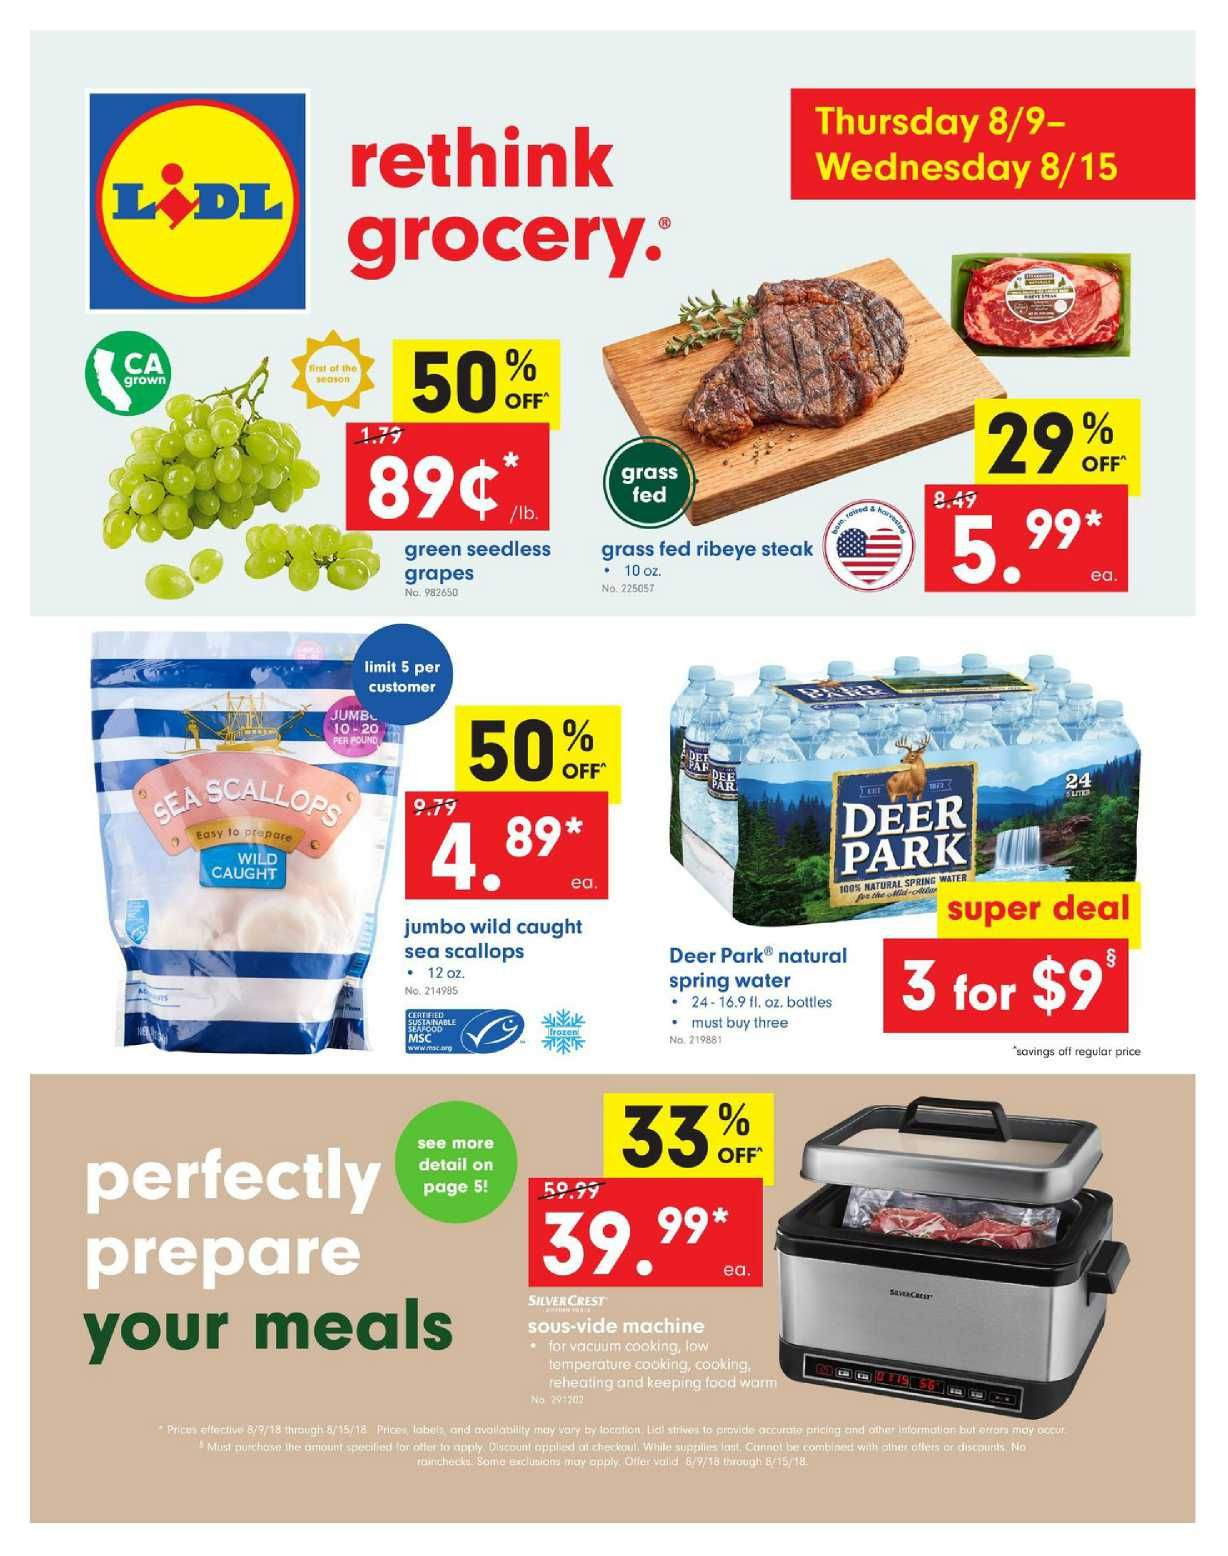 Lidl Weekly Ad Specials Flyer Feb 19 Feb 25 2020 Weeklyad123 Com Weekly Ad Circular Grocery Stores Grocery Savings Grocery Grocery Store